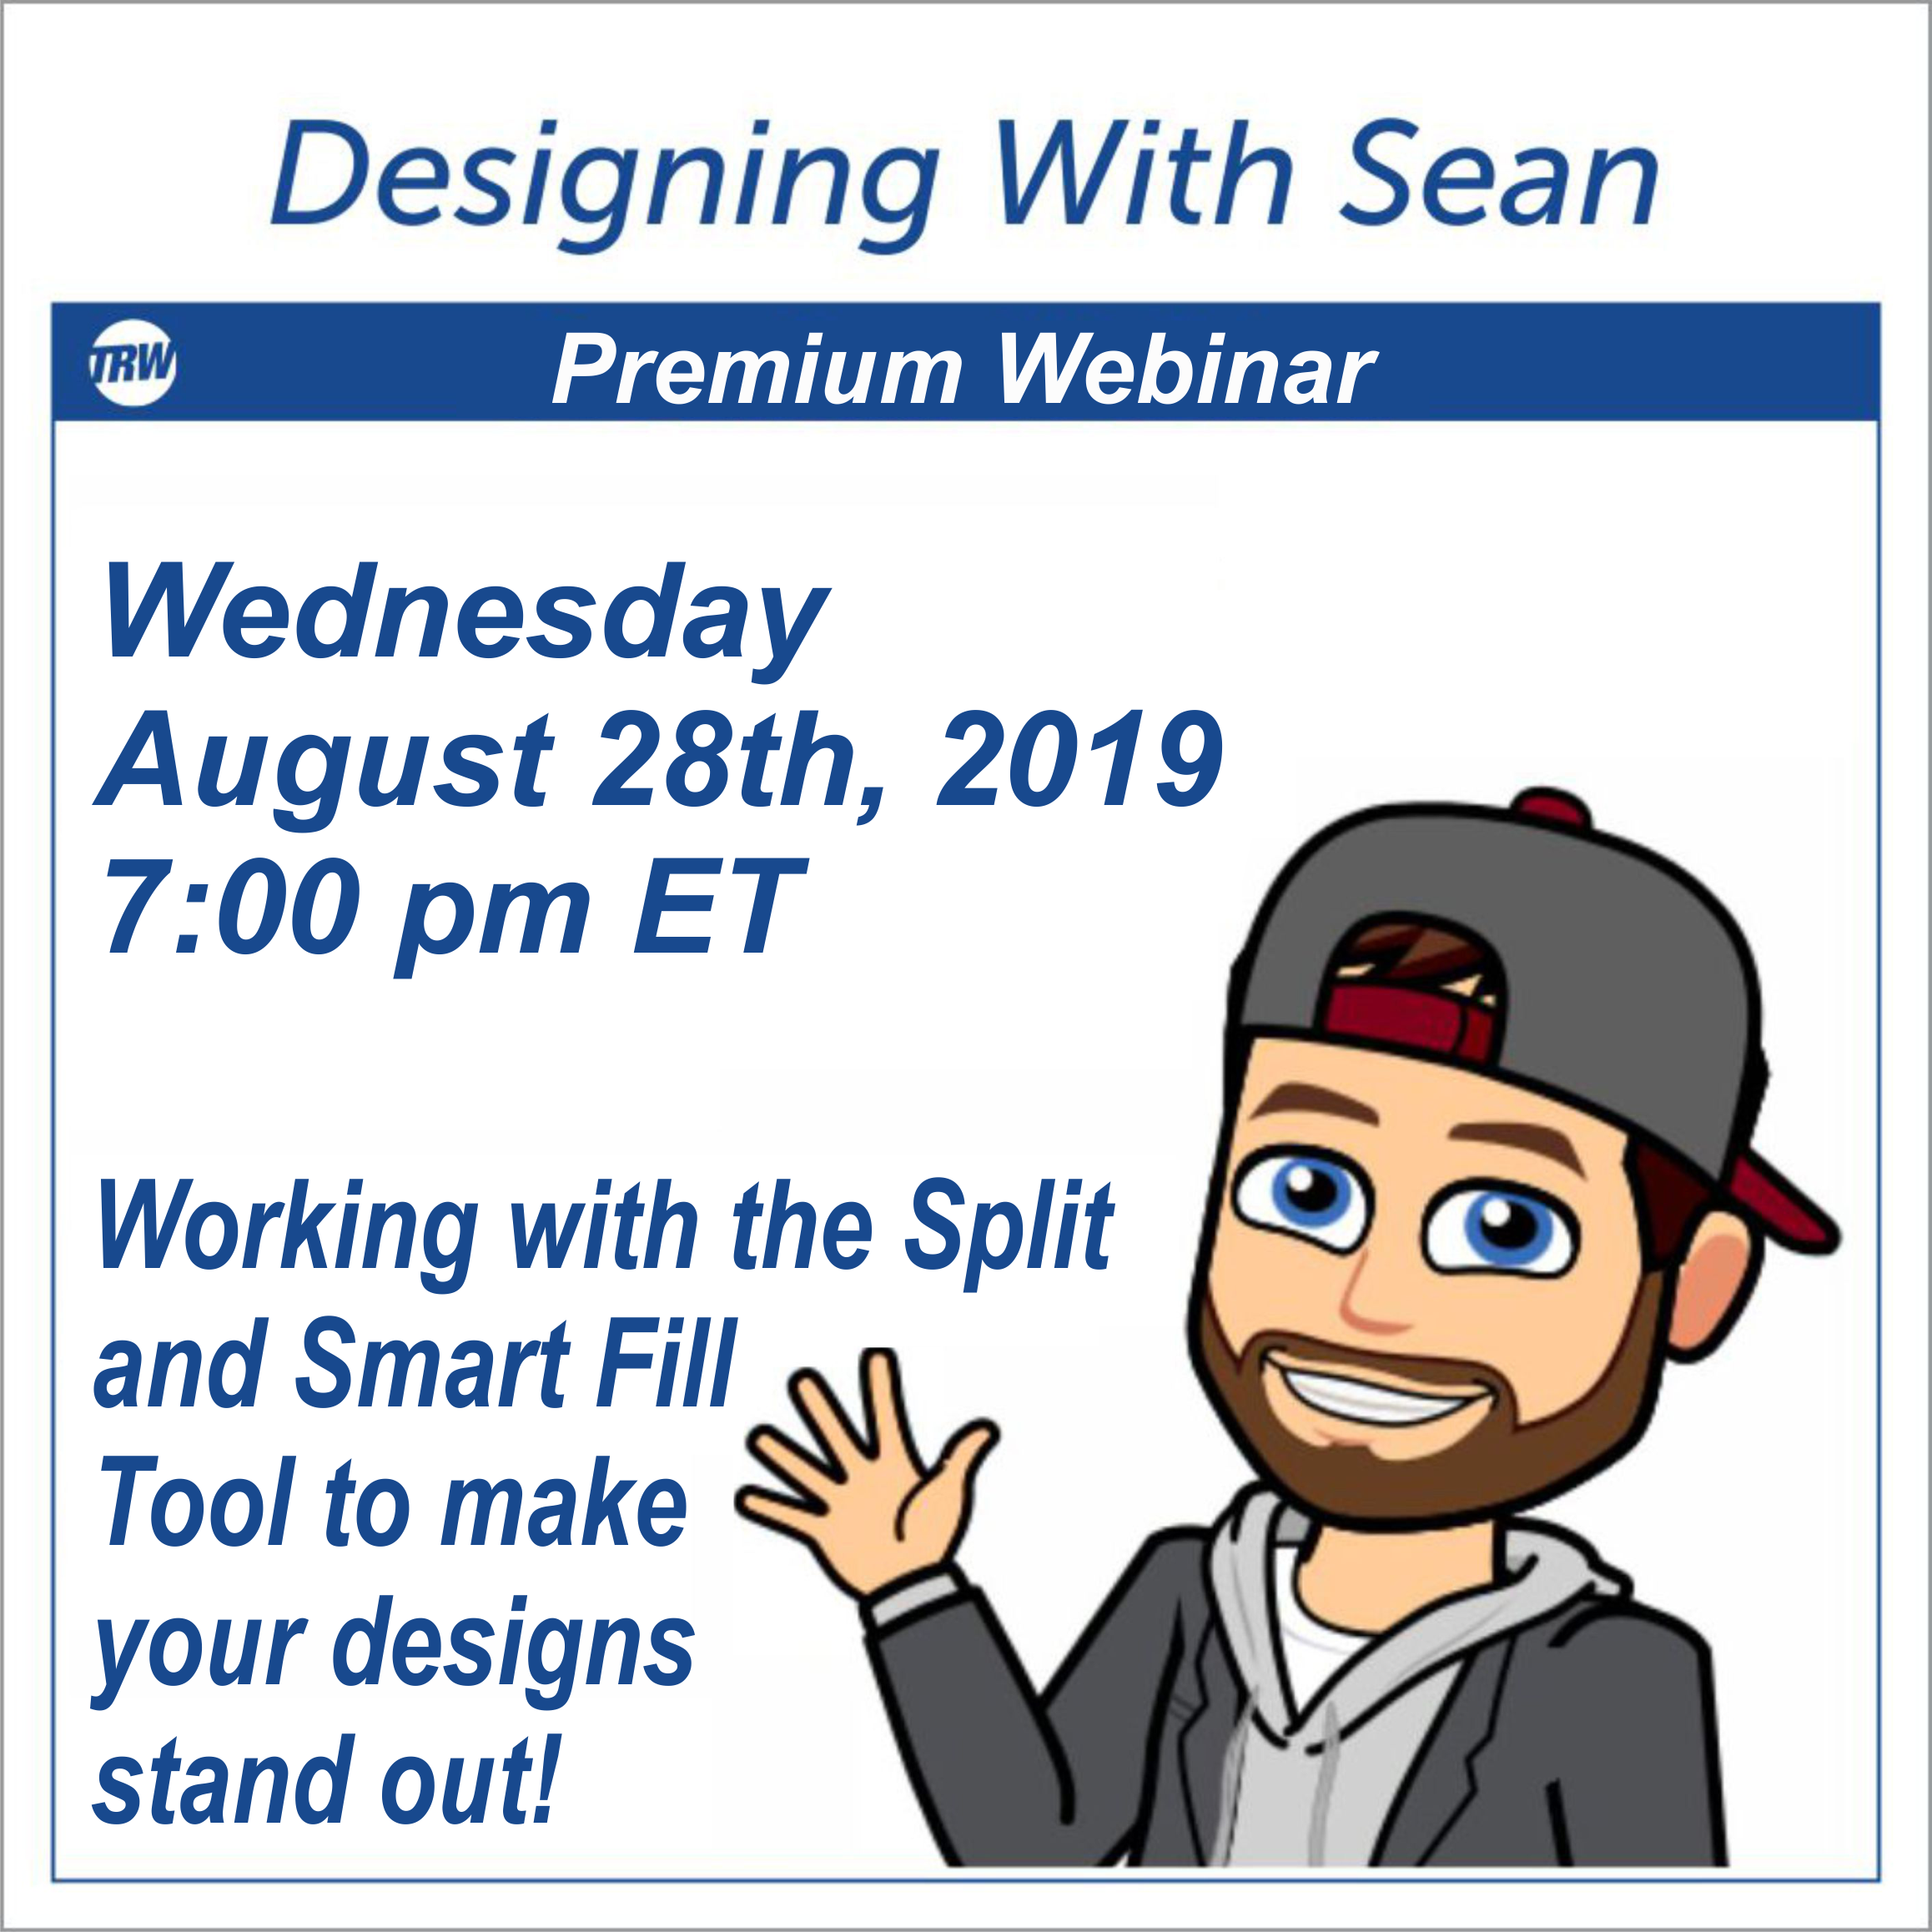 Designing with Sean - Working with the Split and Smart Fill Tool to make your Designs stand out